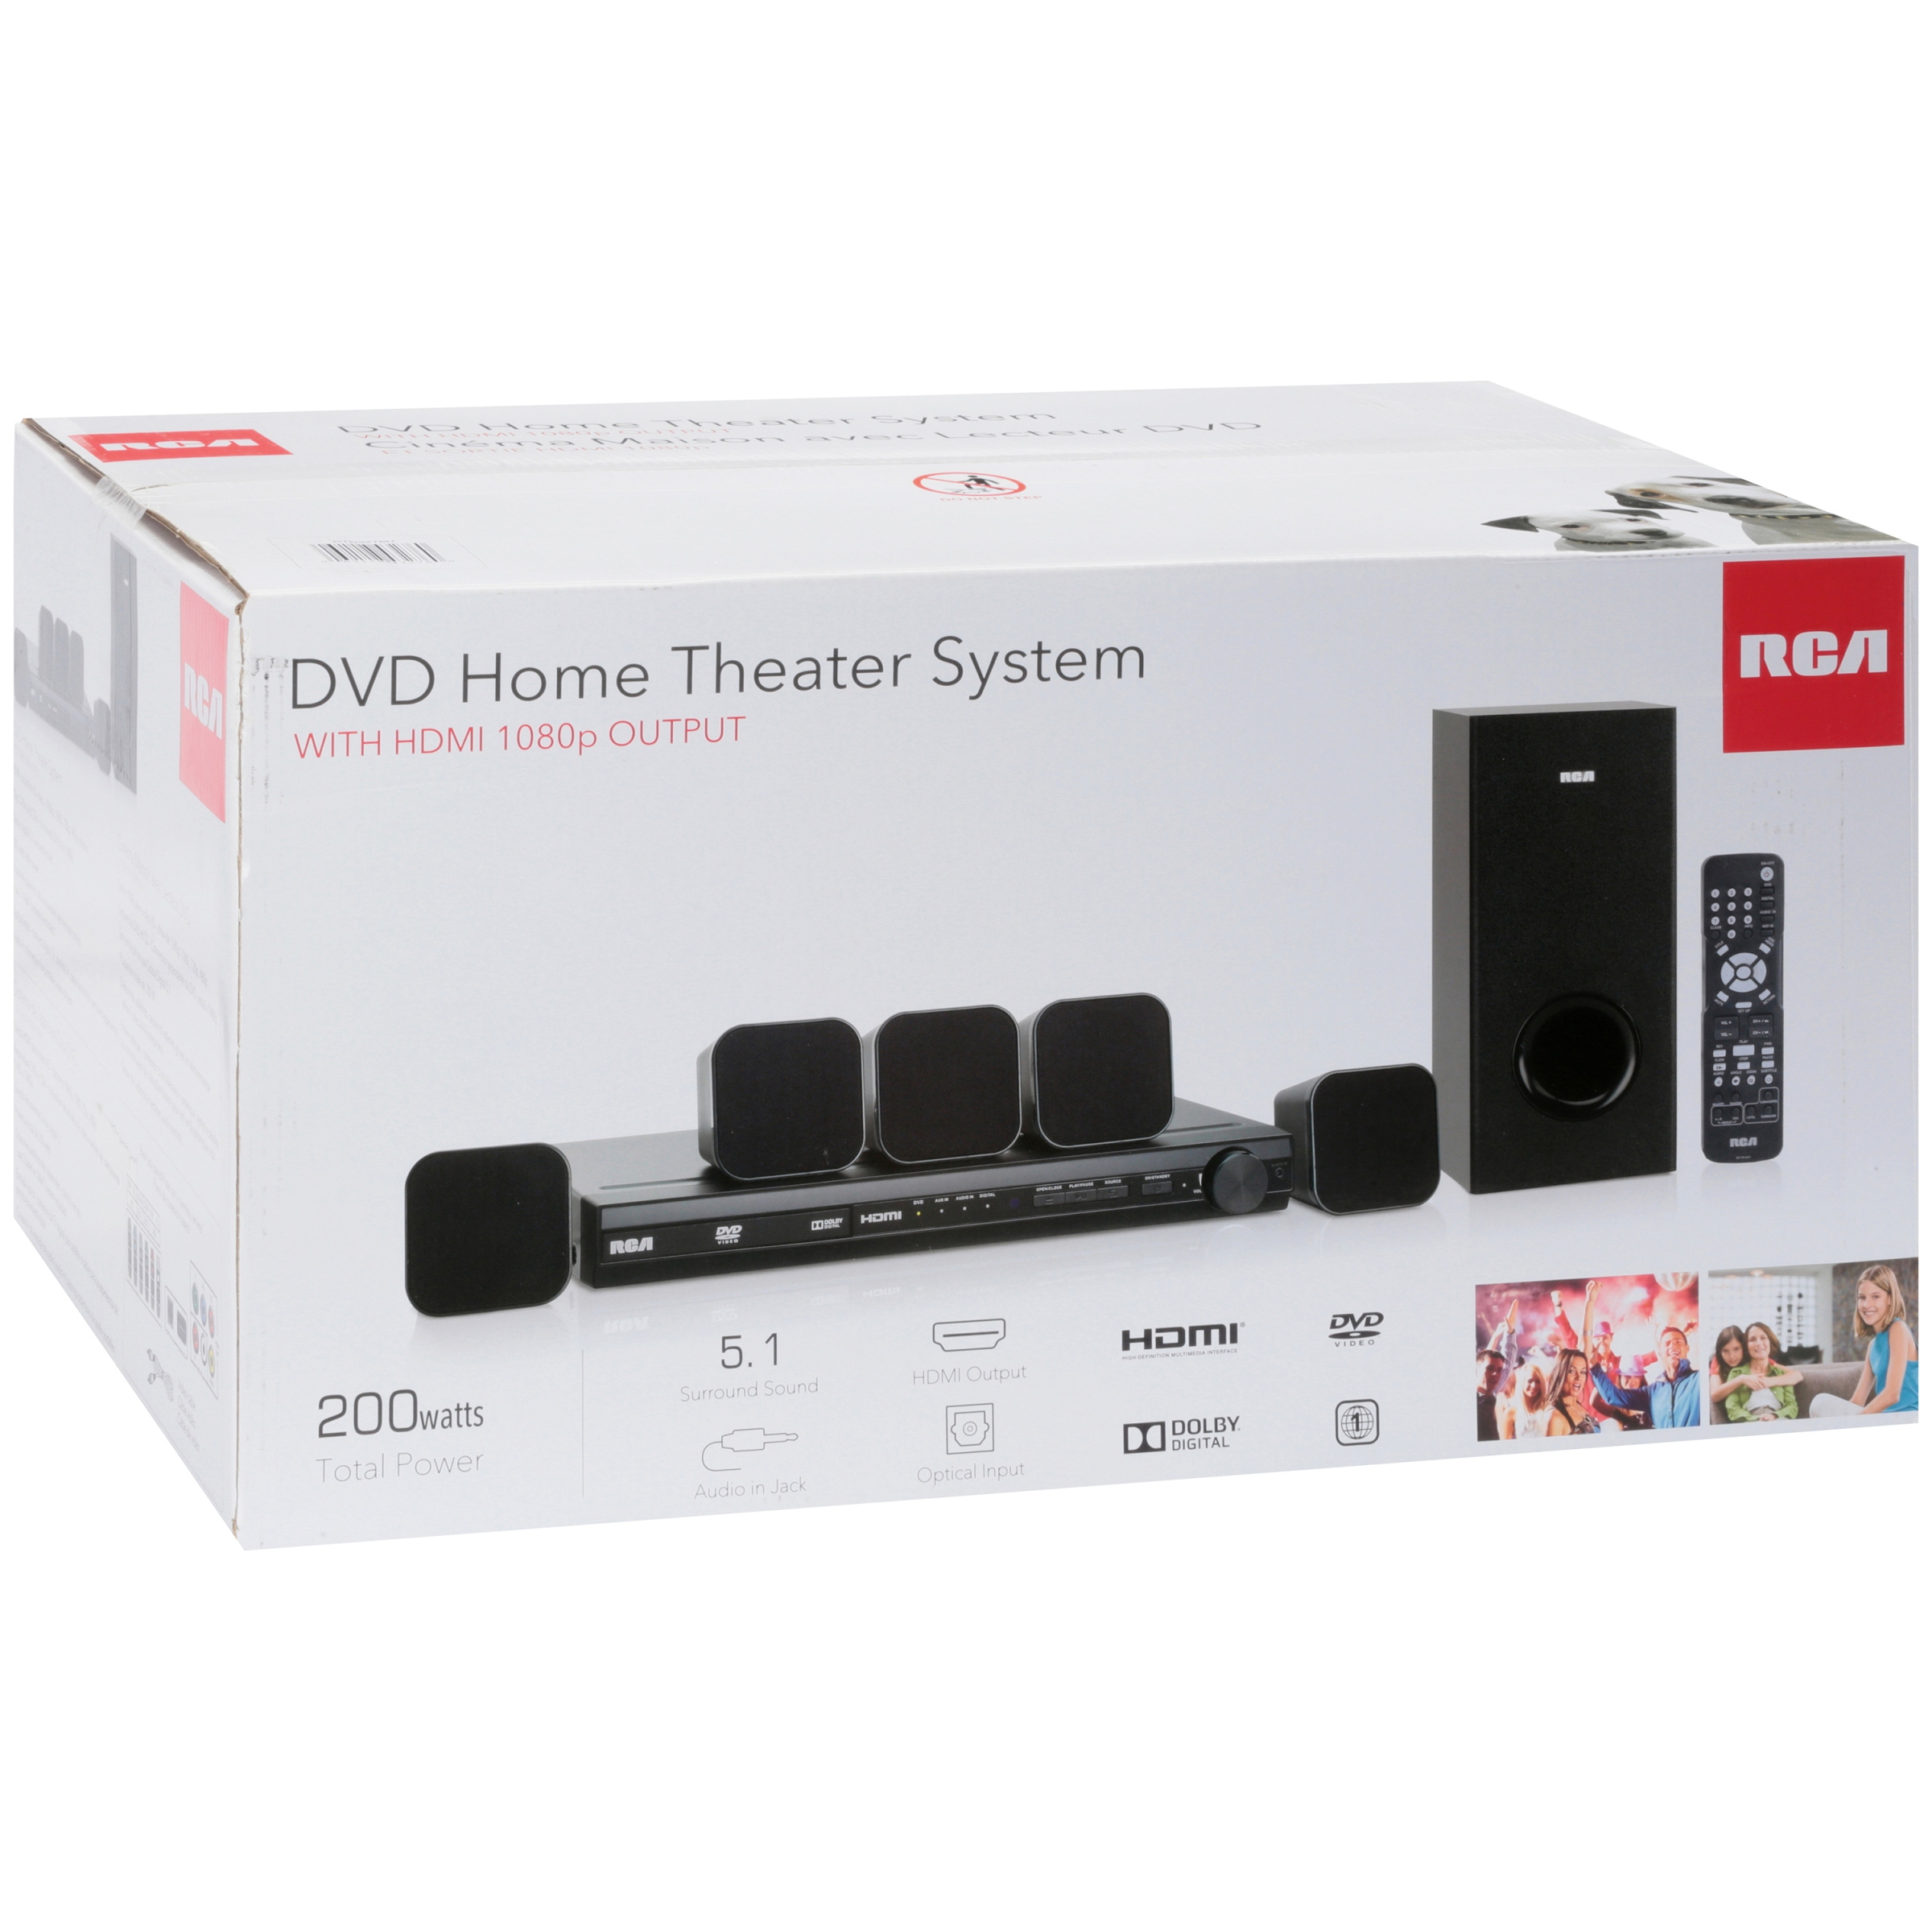 Rca Dvd Home Theater System With Hdmi 1080p Output 8 Pc Box Connection Diagram On 5 1 Surround Sound Setup Simple